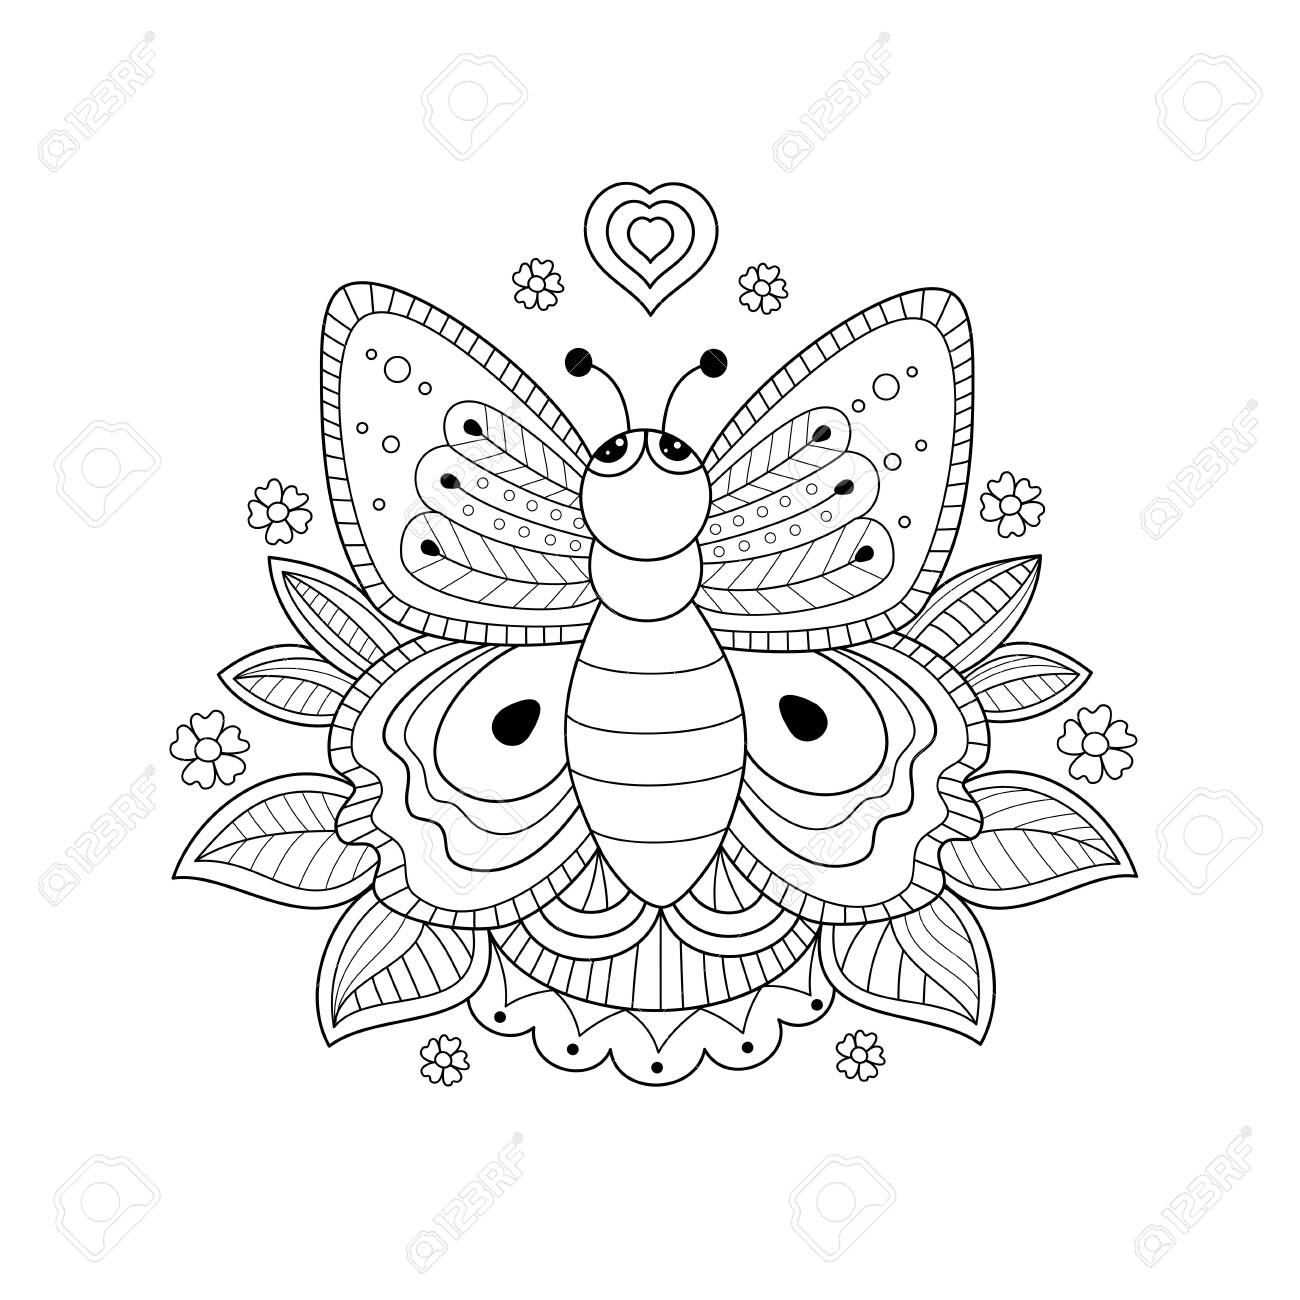 Butterfly coloring book for adult and kids. Handdrawn. Vector illustration. Doodle style. - 126186638